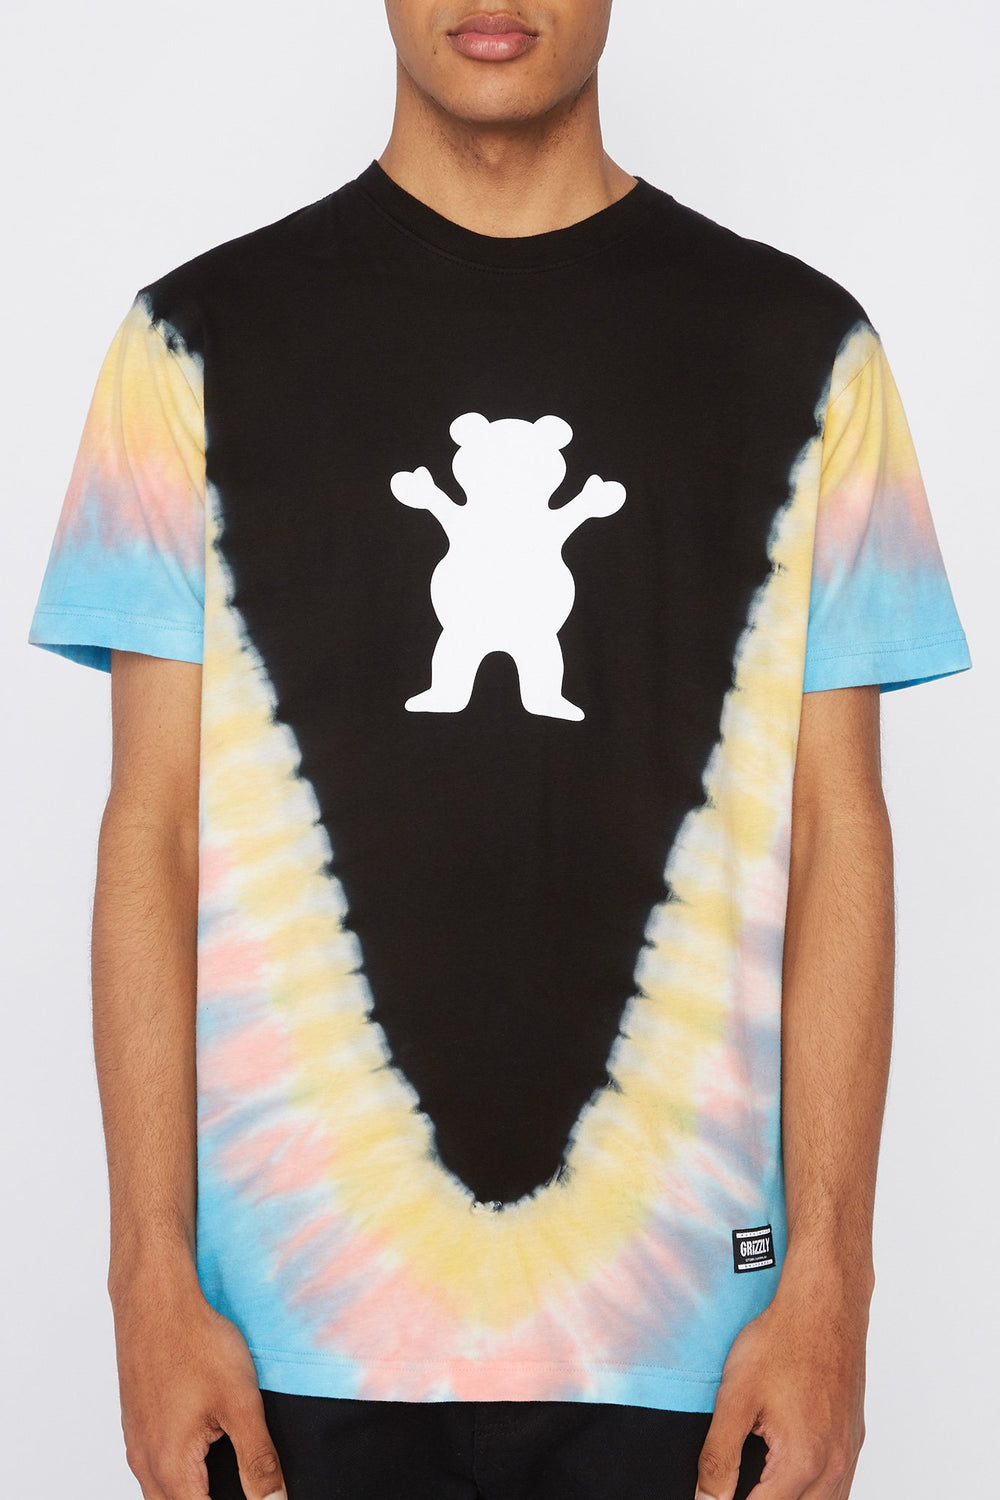 T-Shirt OG Bear Cosmique Grizzly Homme Jaune fluo